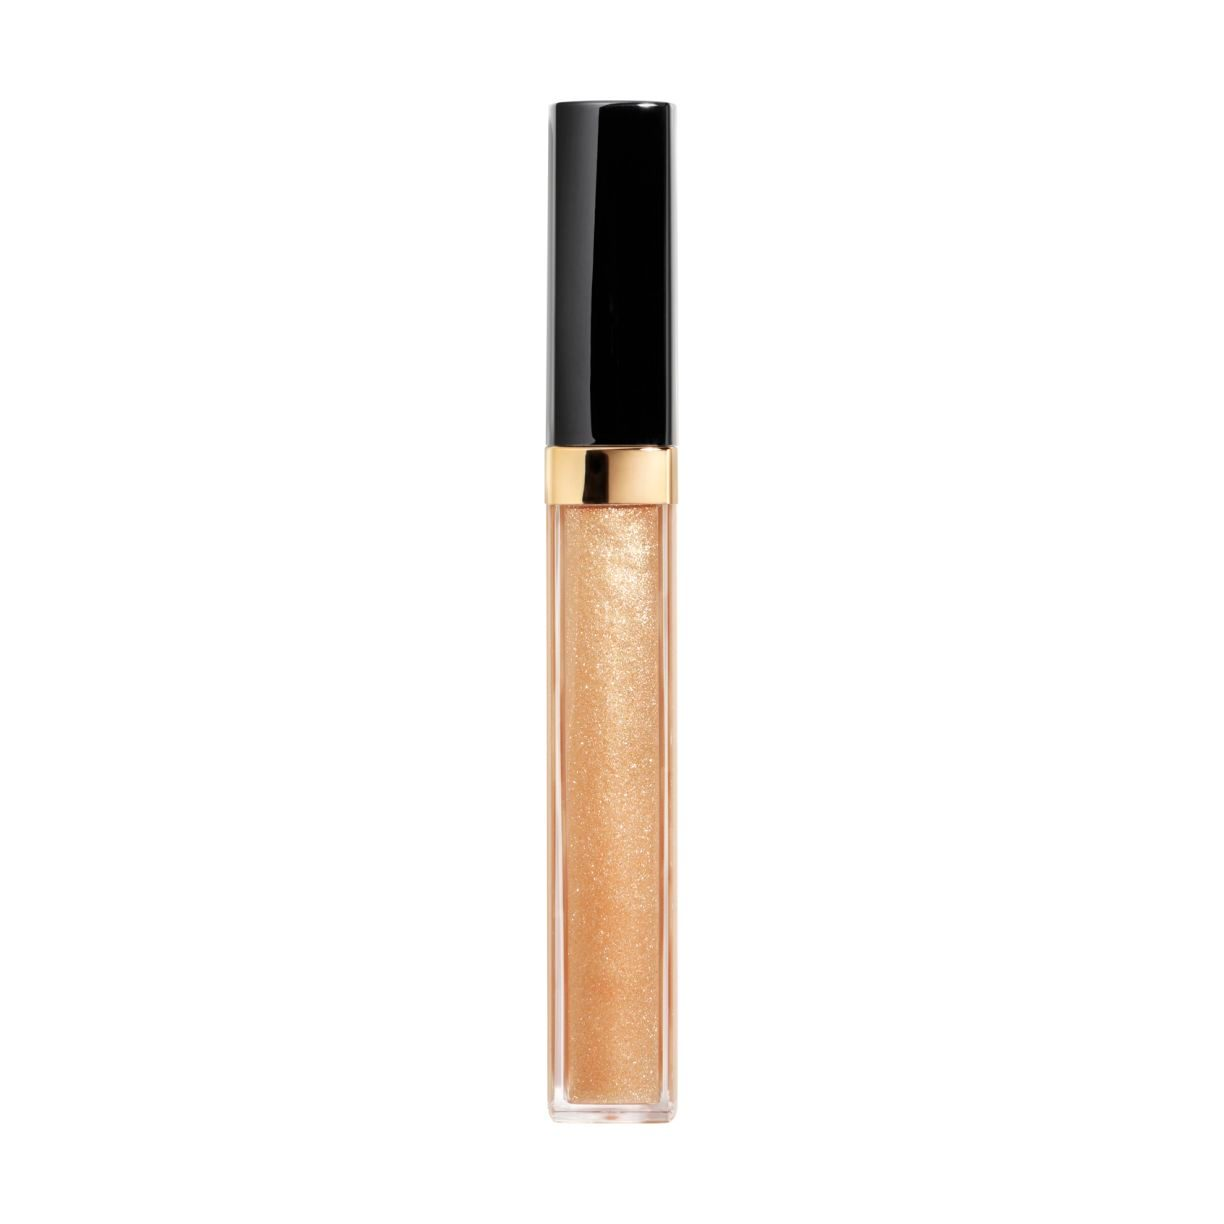 ROUGE COCO GLOSS توب كوت 774 - EXCITATION